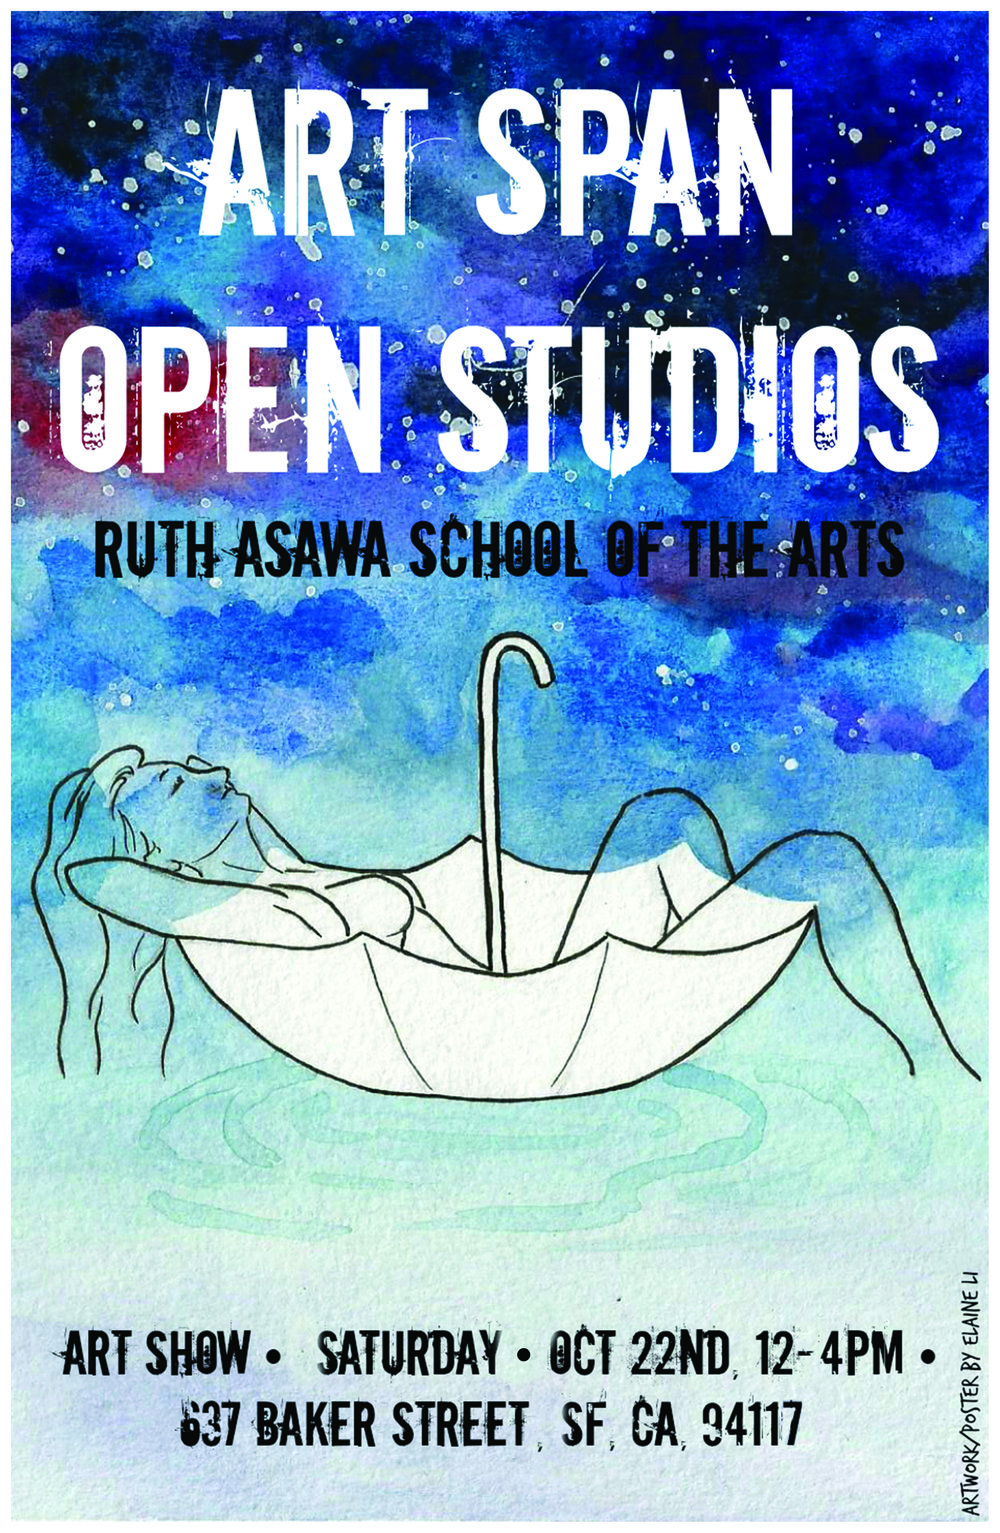 CALENDARYOUTH OPEN STUDIOS ART EXHIBITION & PARTY!